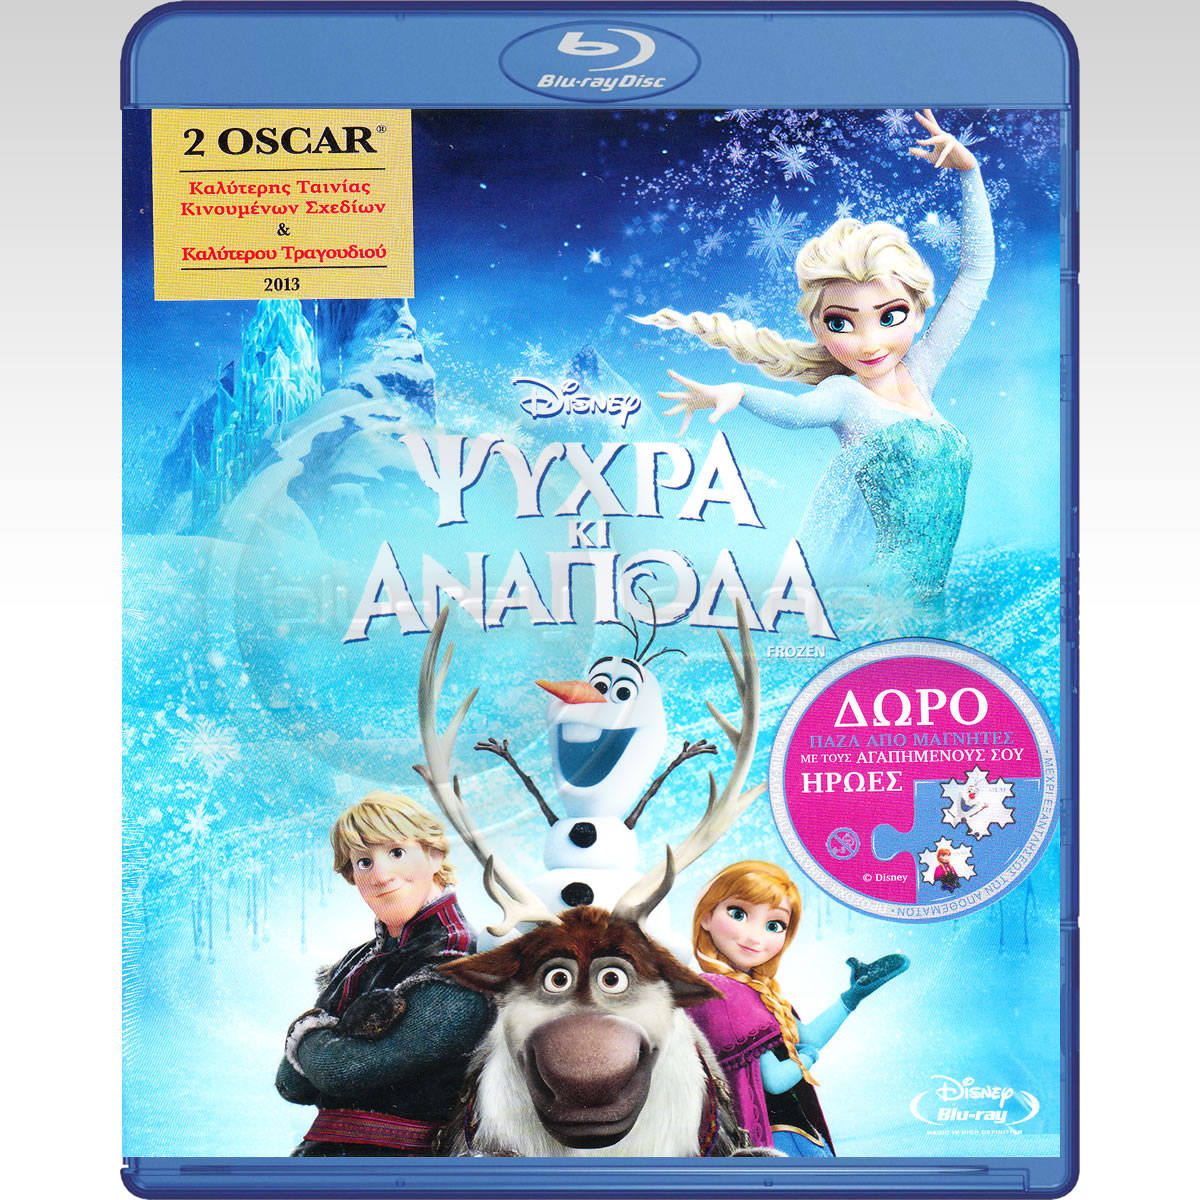 FROZEN - ����� ��� ������� (BLU-RAY) & ��� ��������